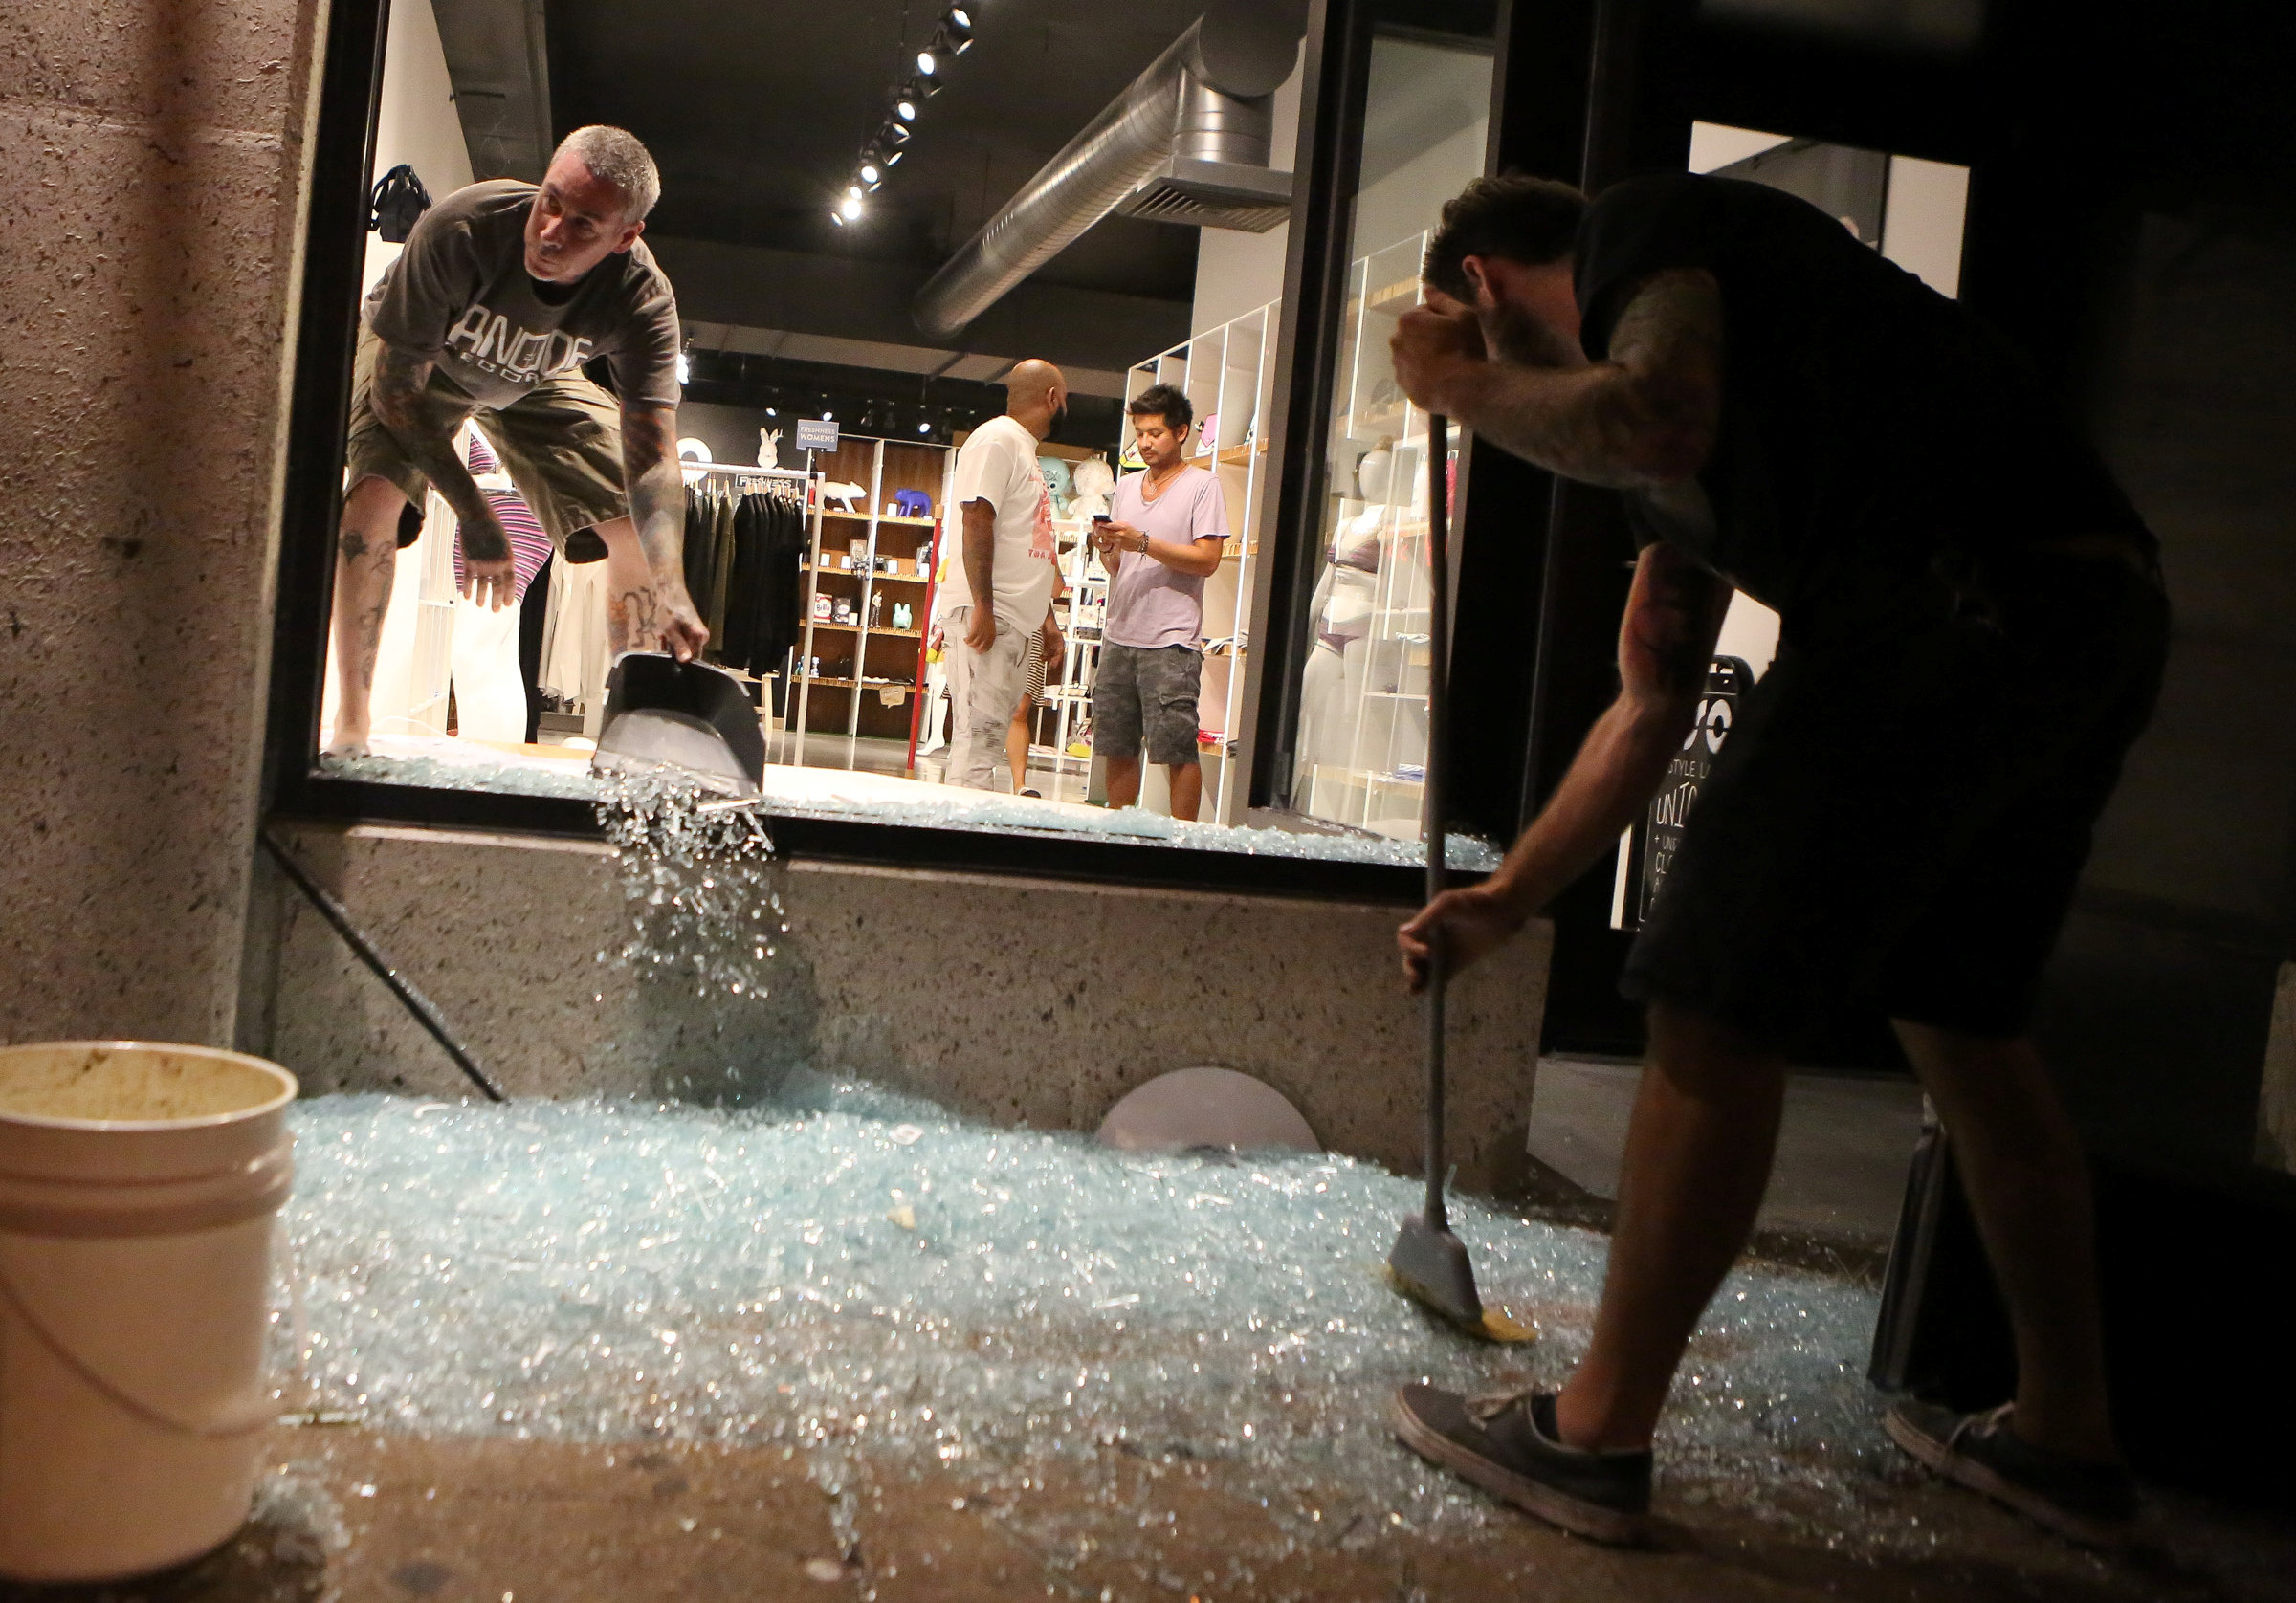 Shopkeepers clean up shattered glass during the second night of demonstrations after a not guilty verdict in the murder trial of former St. Louis police officer Jason Stockley, charged with the 2011 shooting of Anthony Lamar Smith, who was black, in St. Louis, Missouri on Sept. 16, 2017. (REUTERS/Lawrence Bryant)